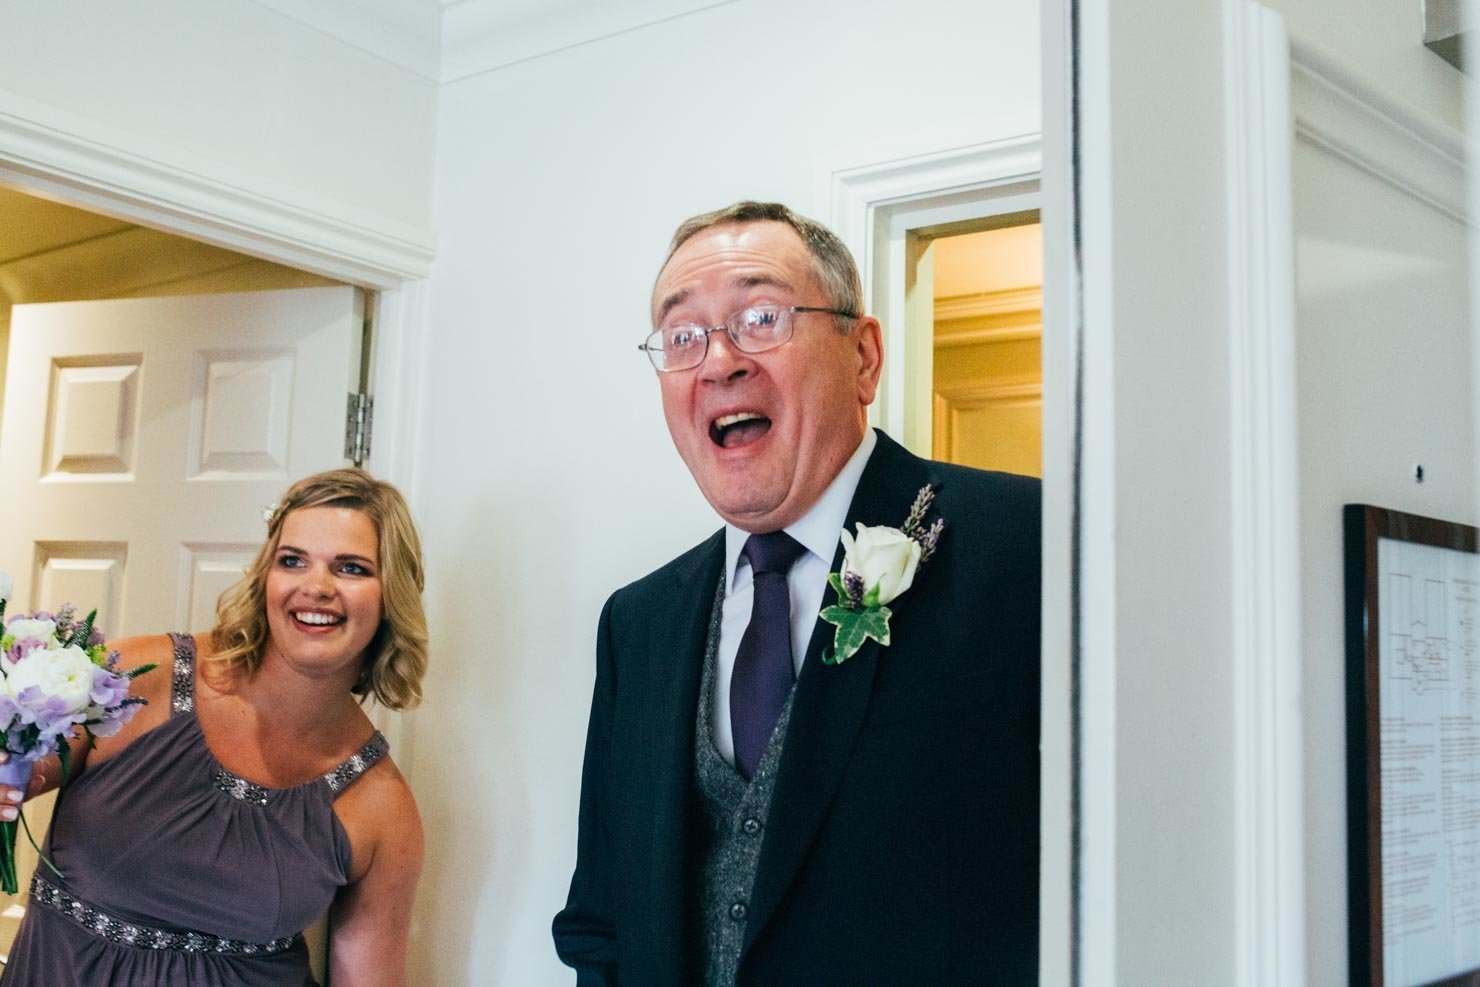 Father of the groom natural look of joy as he sees the bride for the first time